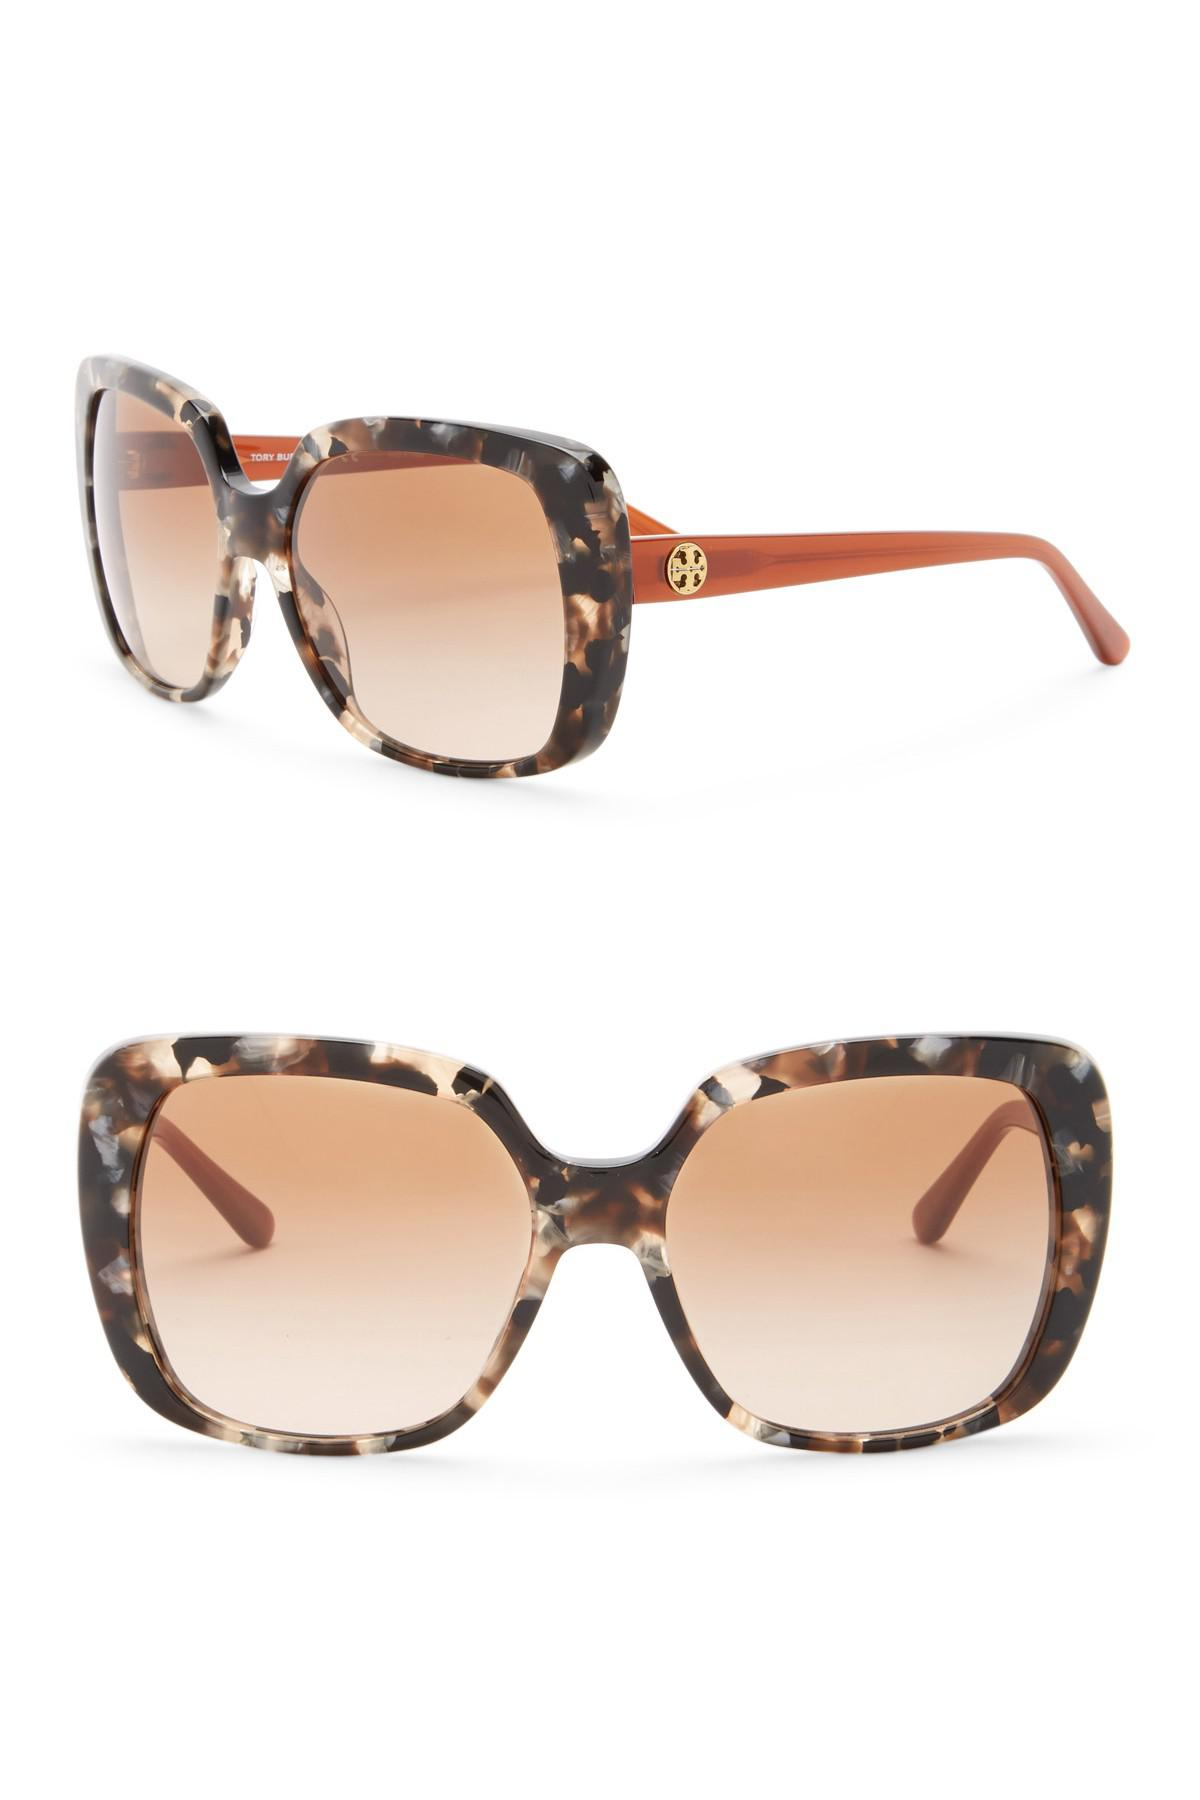 8d1aaef35762 Tory Burch Rectangle 57mm Sunglasses in Brown - Lyst